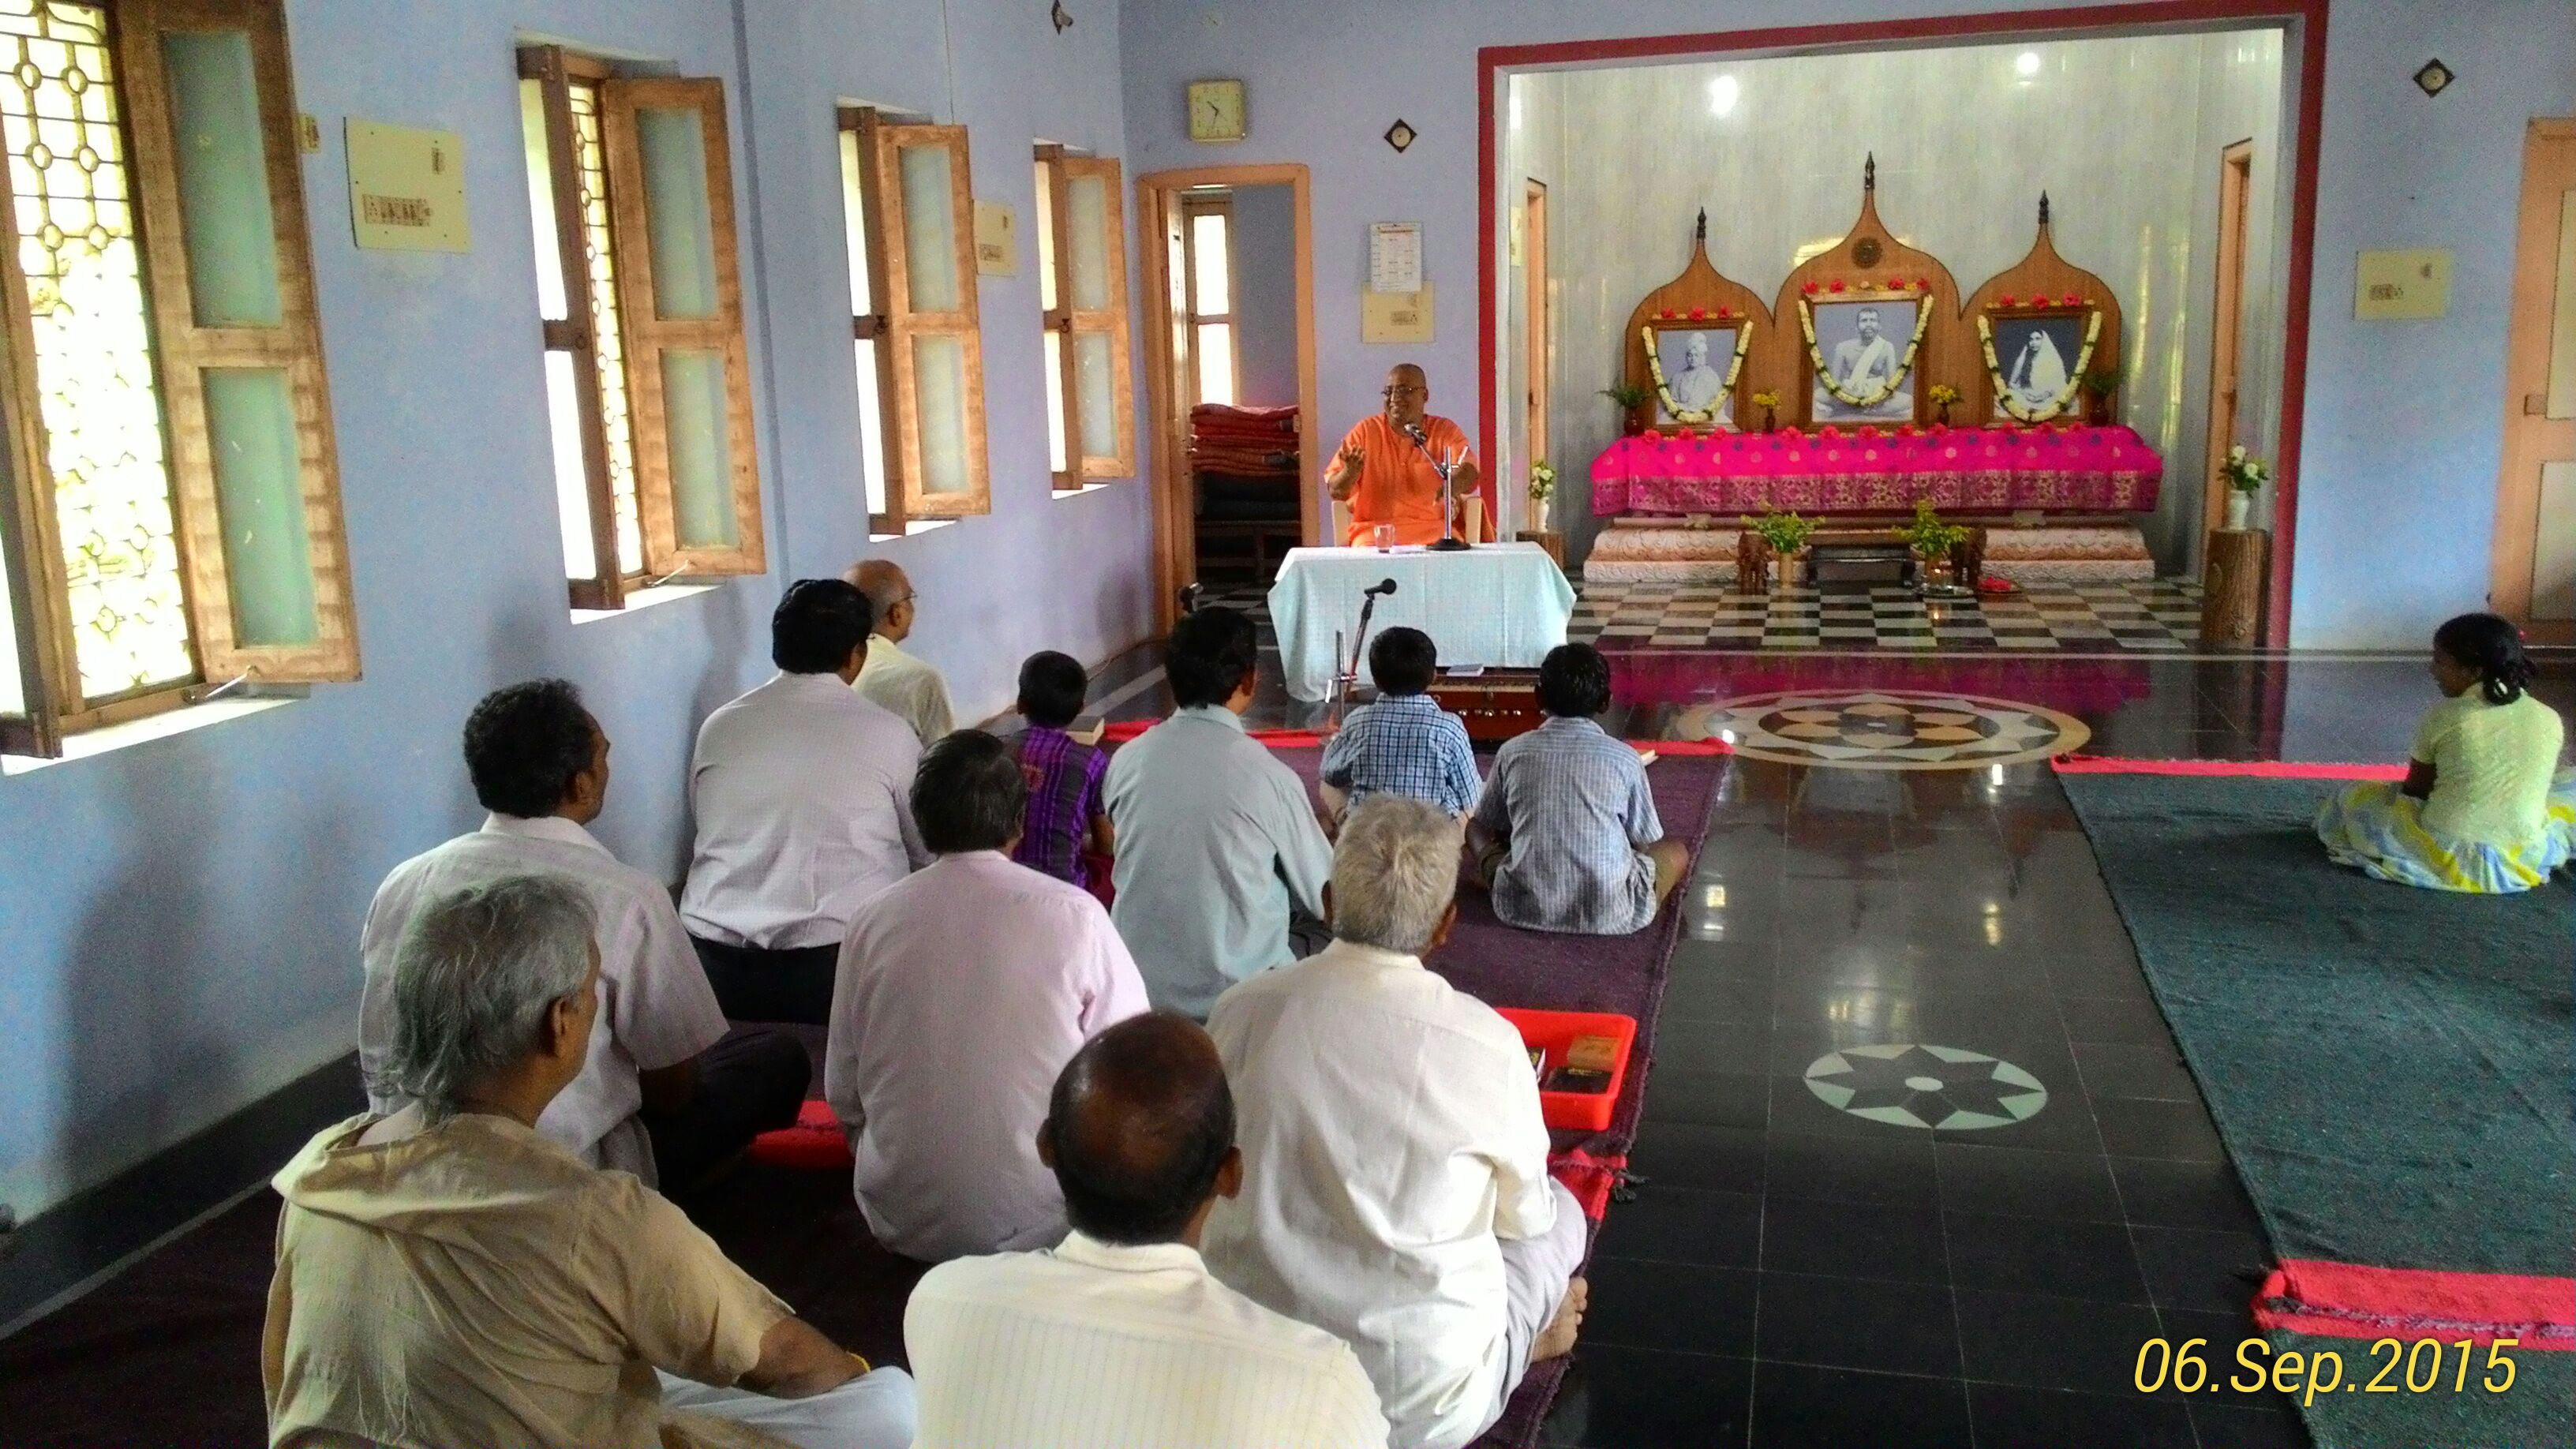 Rev. Swami Guneshanandaji addressing the devotees.